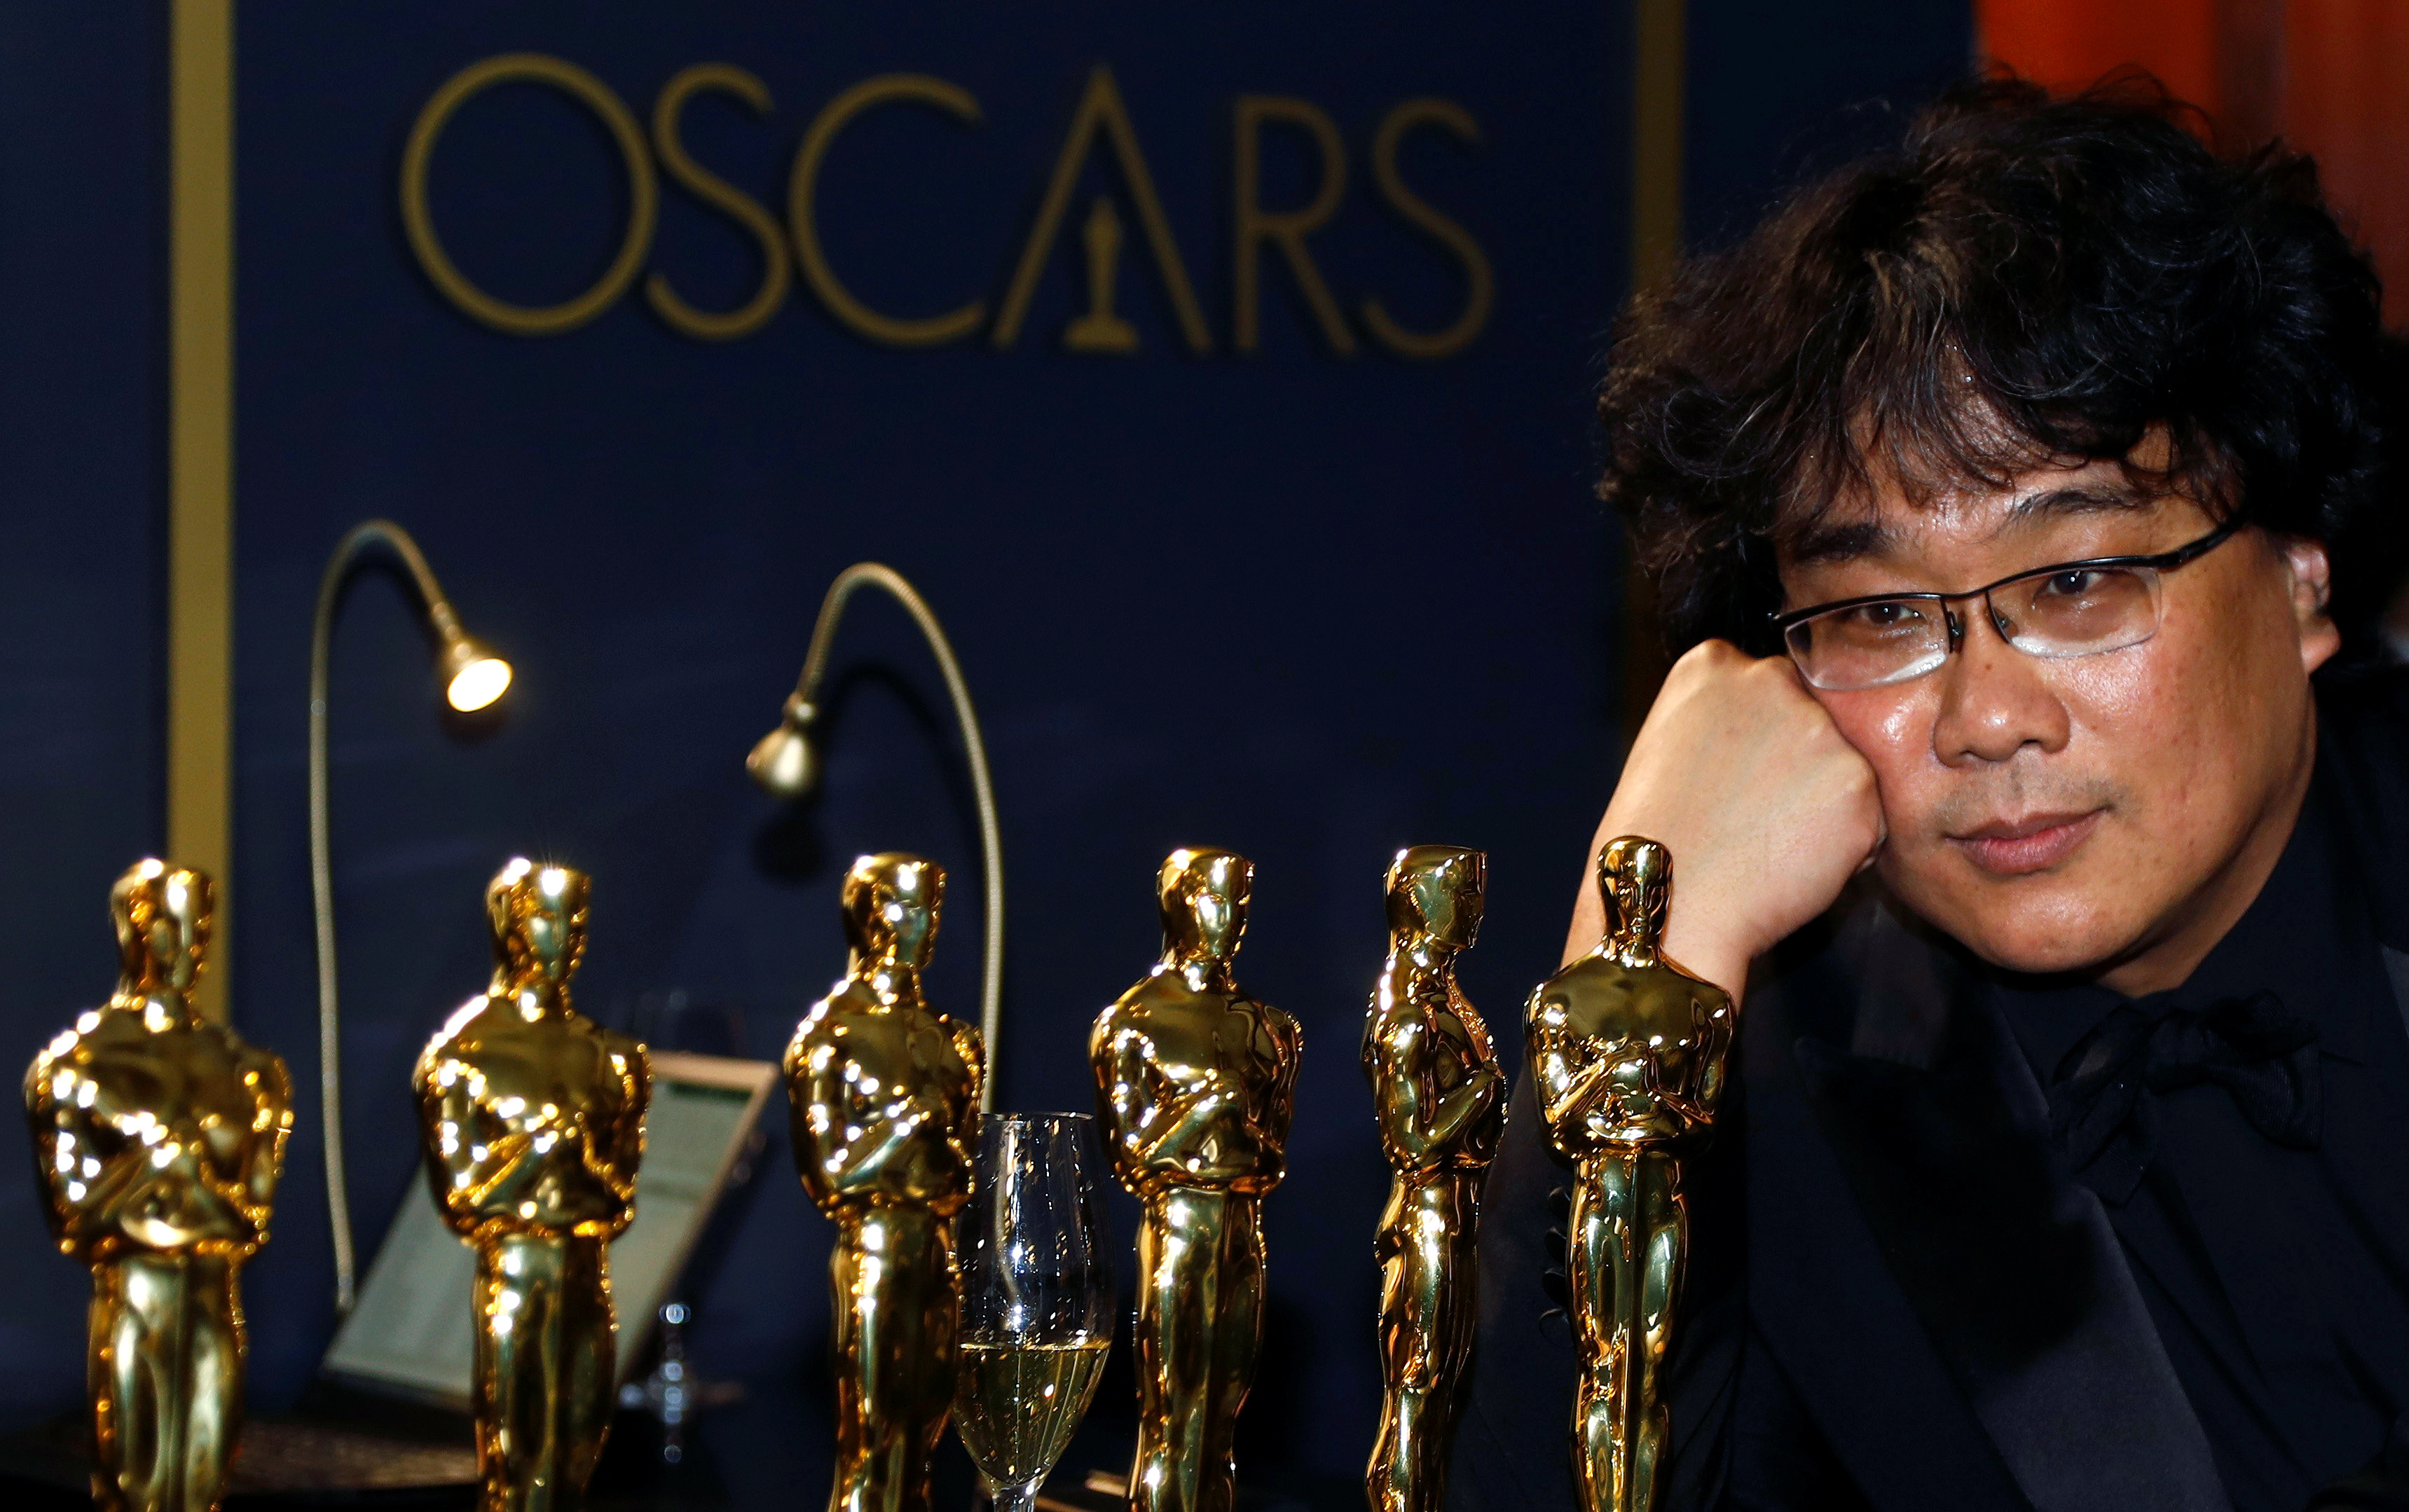 """Bong Joon Ho poses with the Oscars for """"Parasite"""" at the Governors Ball following the 92nd Academy Awards in Los Angeles, California, U.S., February 9, 2020. REUTERS/Eric Gaillard TPX IMAGES OF THE DAY"""